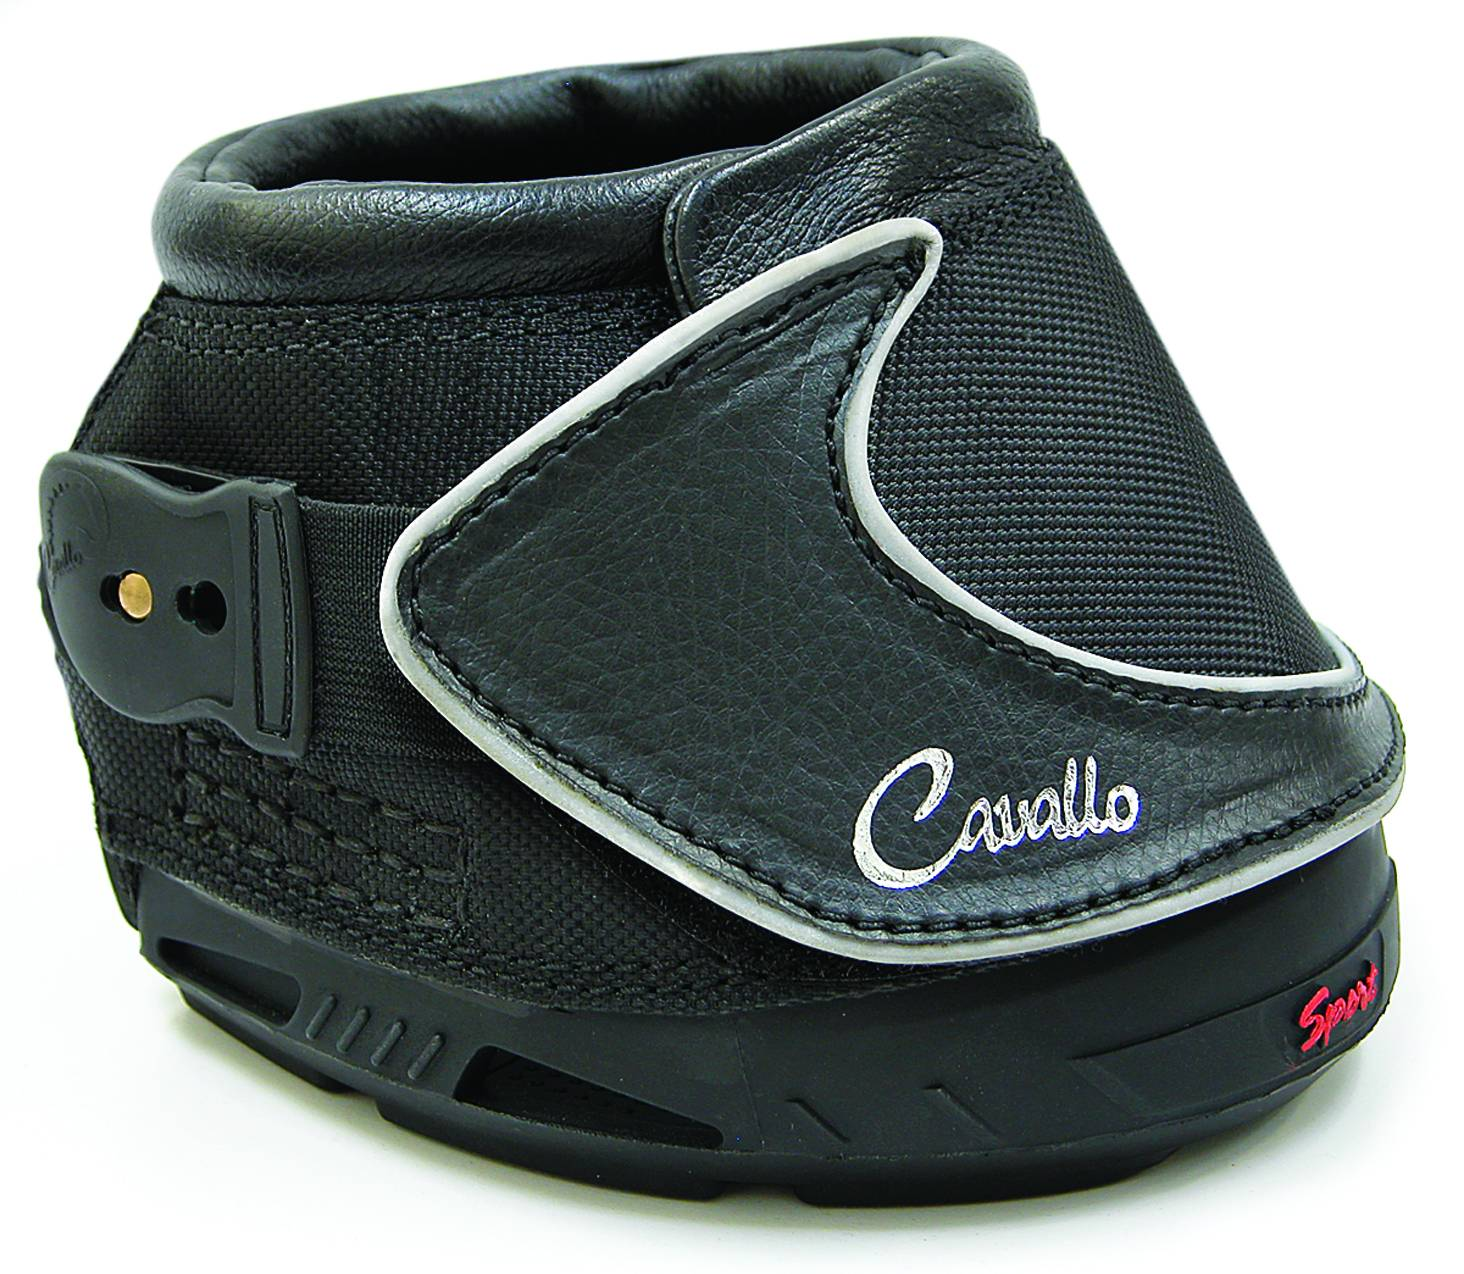 Cavallo Sport Regular Hoof Boot